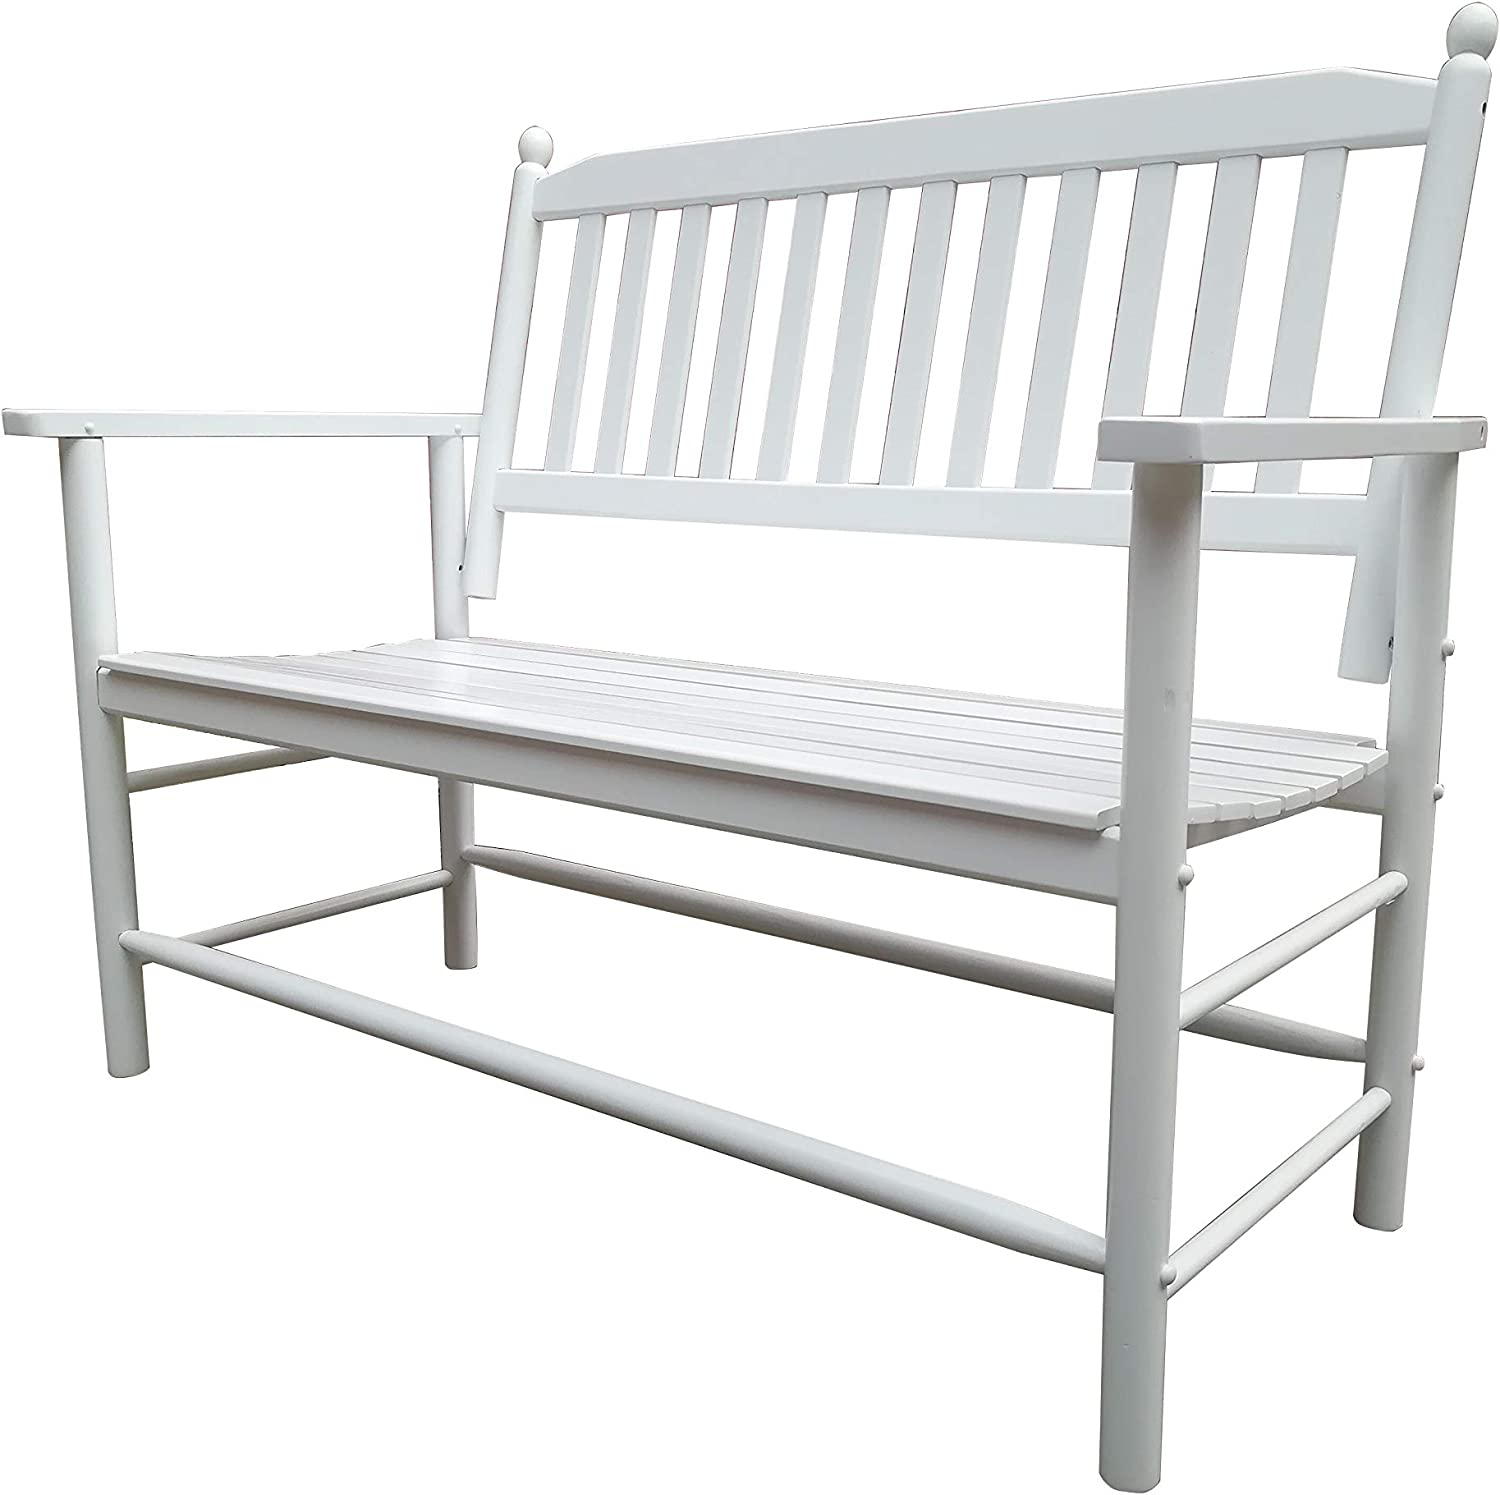 Rockingrocker - A059WT White Outdoor Wood Garden Bench - Suitable for Indoor or Outdoor - Assembled Dimensions:W49.21 x H40.16 x D26.97 inches